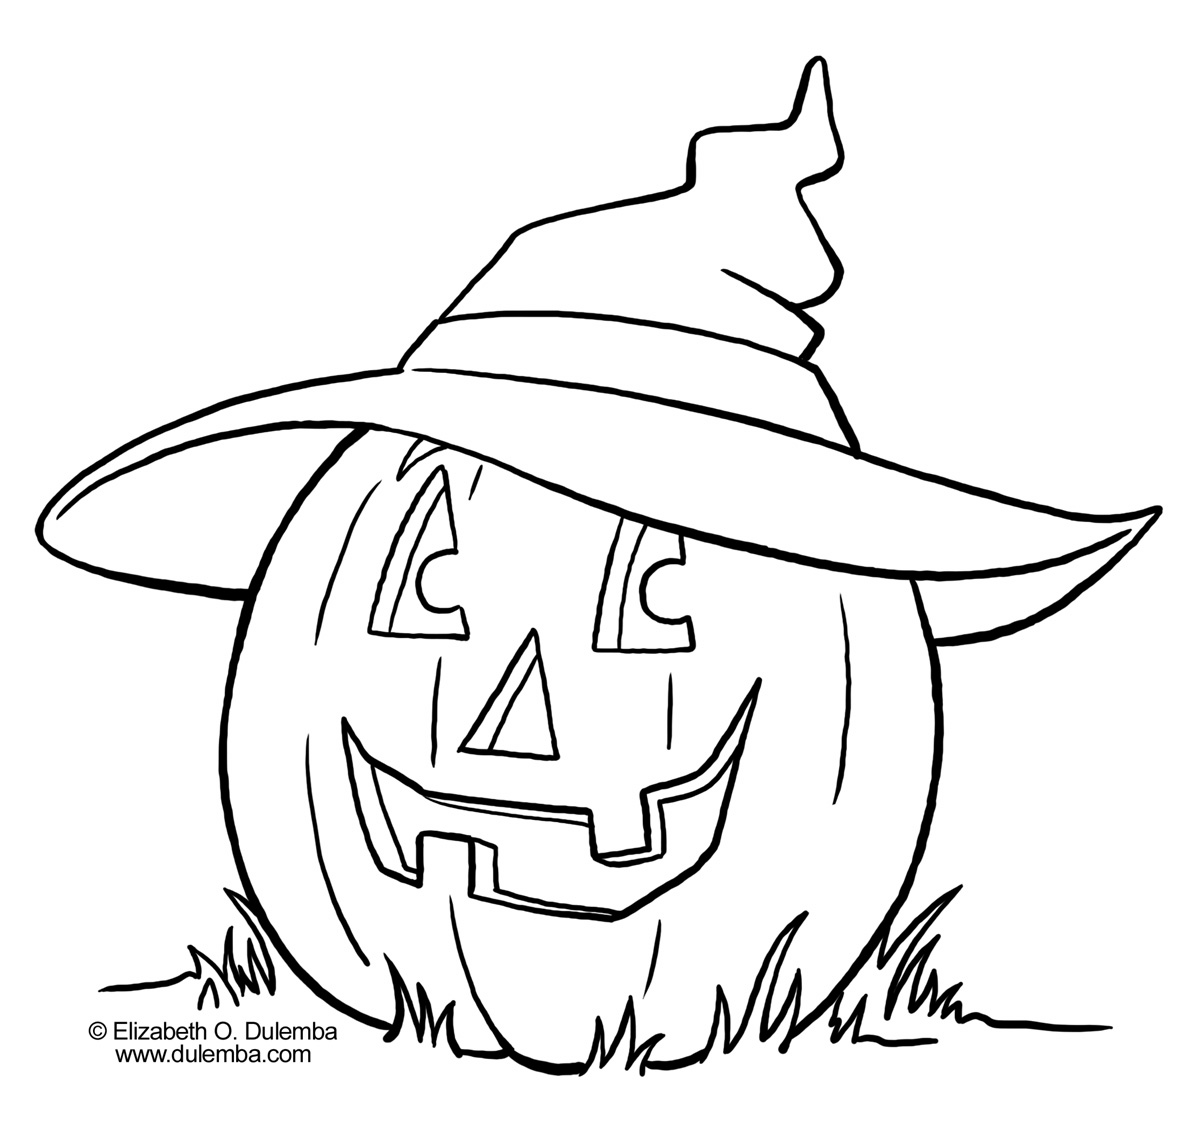 coloring pumpkin halloween clipart halloween colorings pumpkin halloween coloring clipart